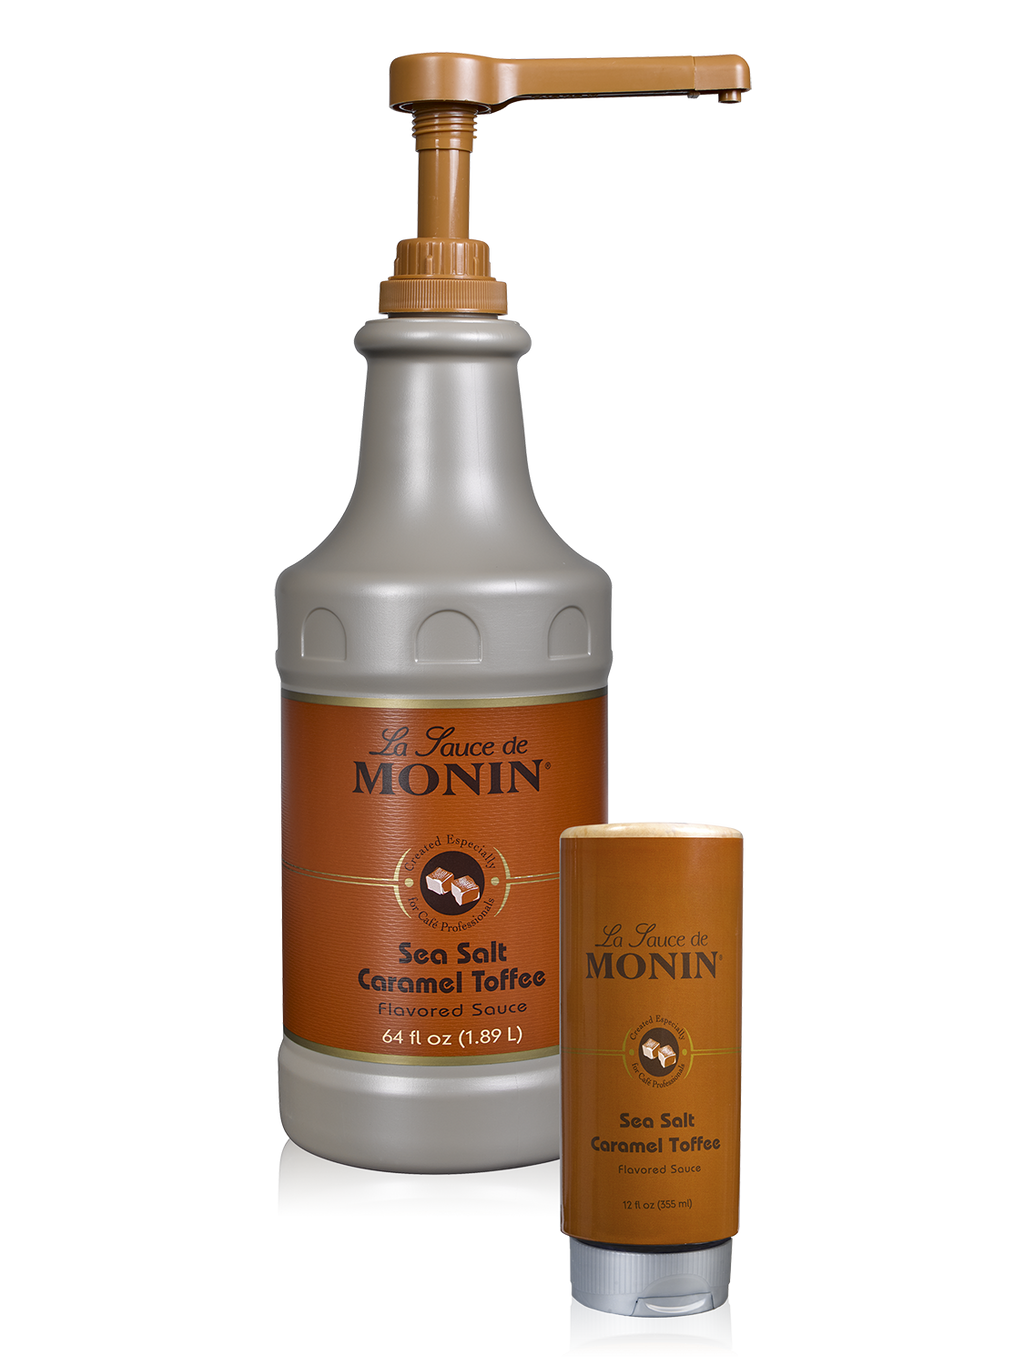 Monin Sea Salt Caramel Toffee Gourmet Sauce